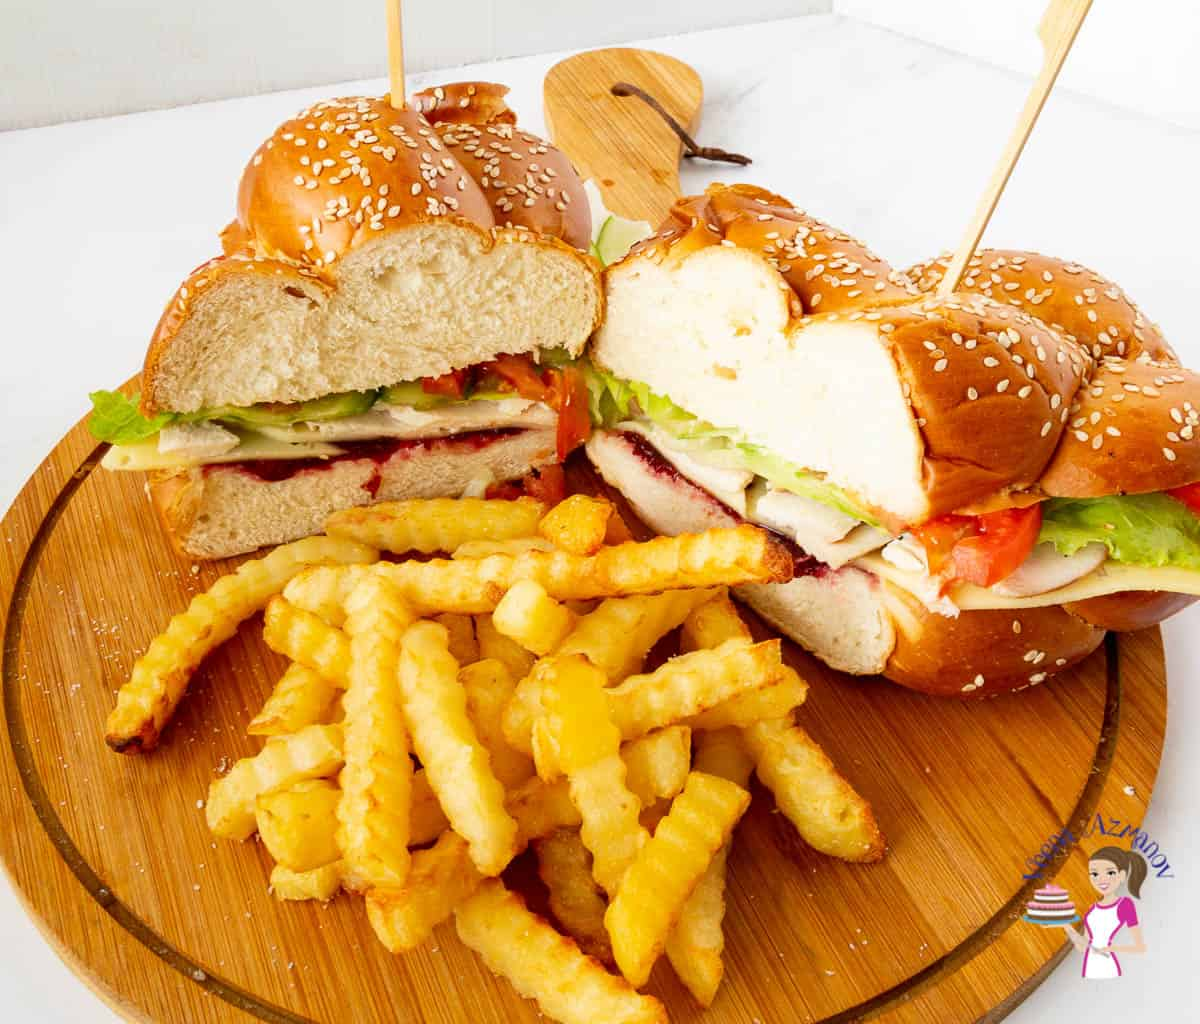 A cut sandwich with fries on a wooden board